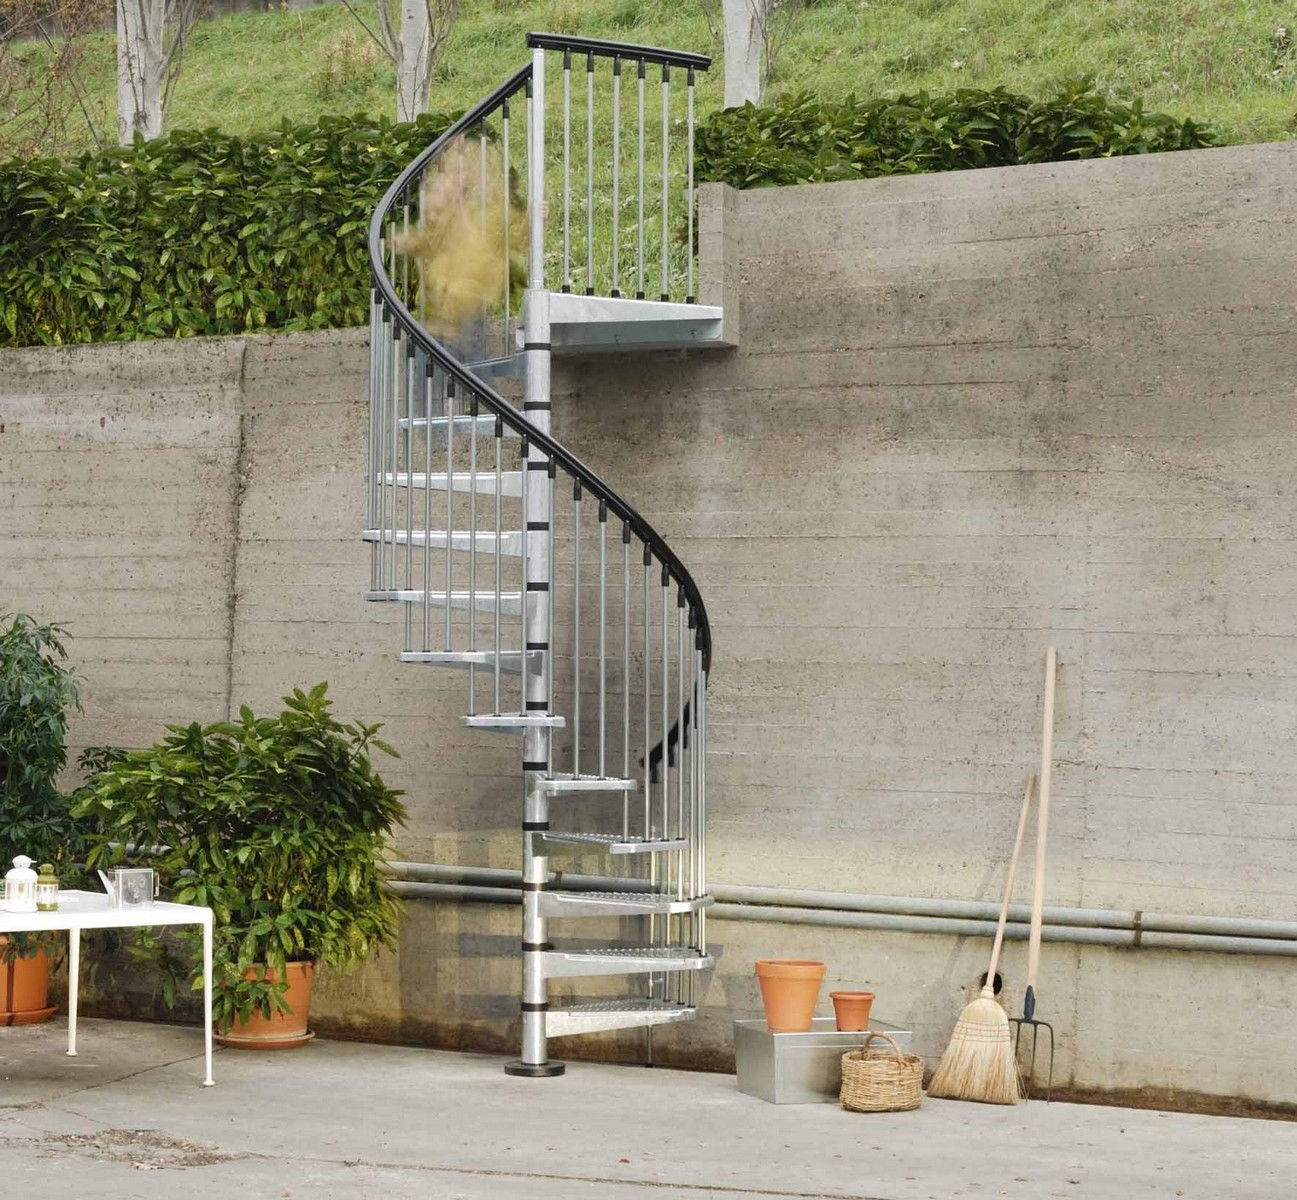 Metal Outdoor Spiral Staircase Exterior Stairs | Spiral Staircase For Outside Deck | Iron | Custom | Double Spiral | Railing | Portable Rectangular Concrete